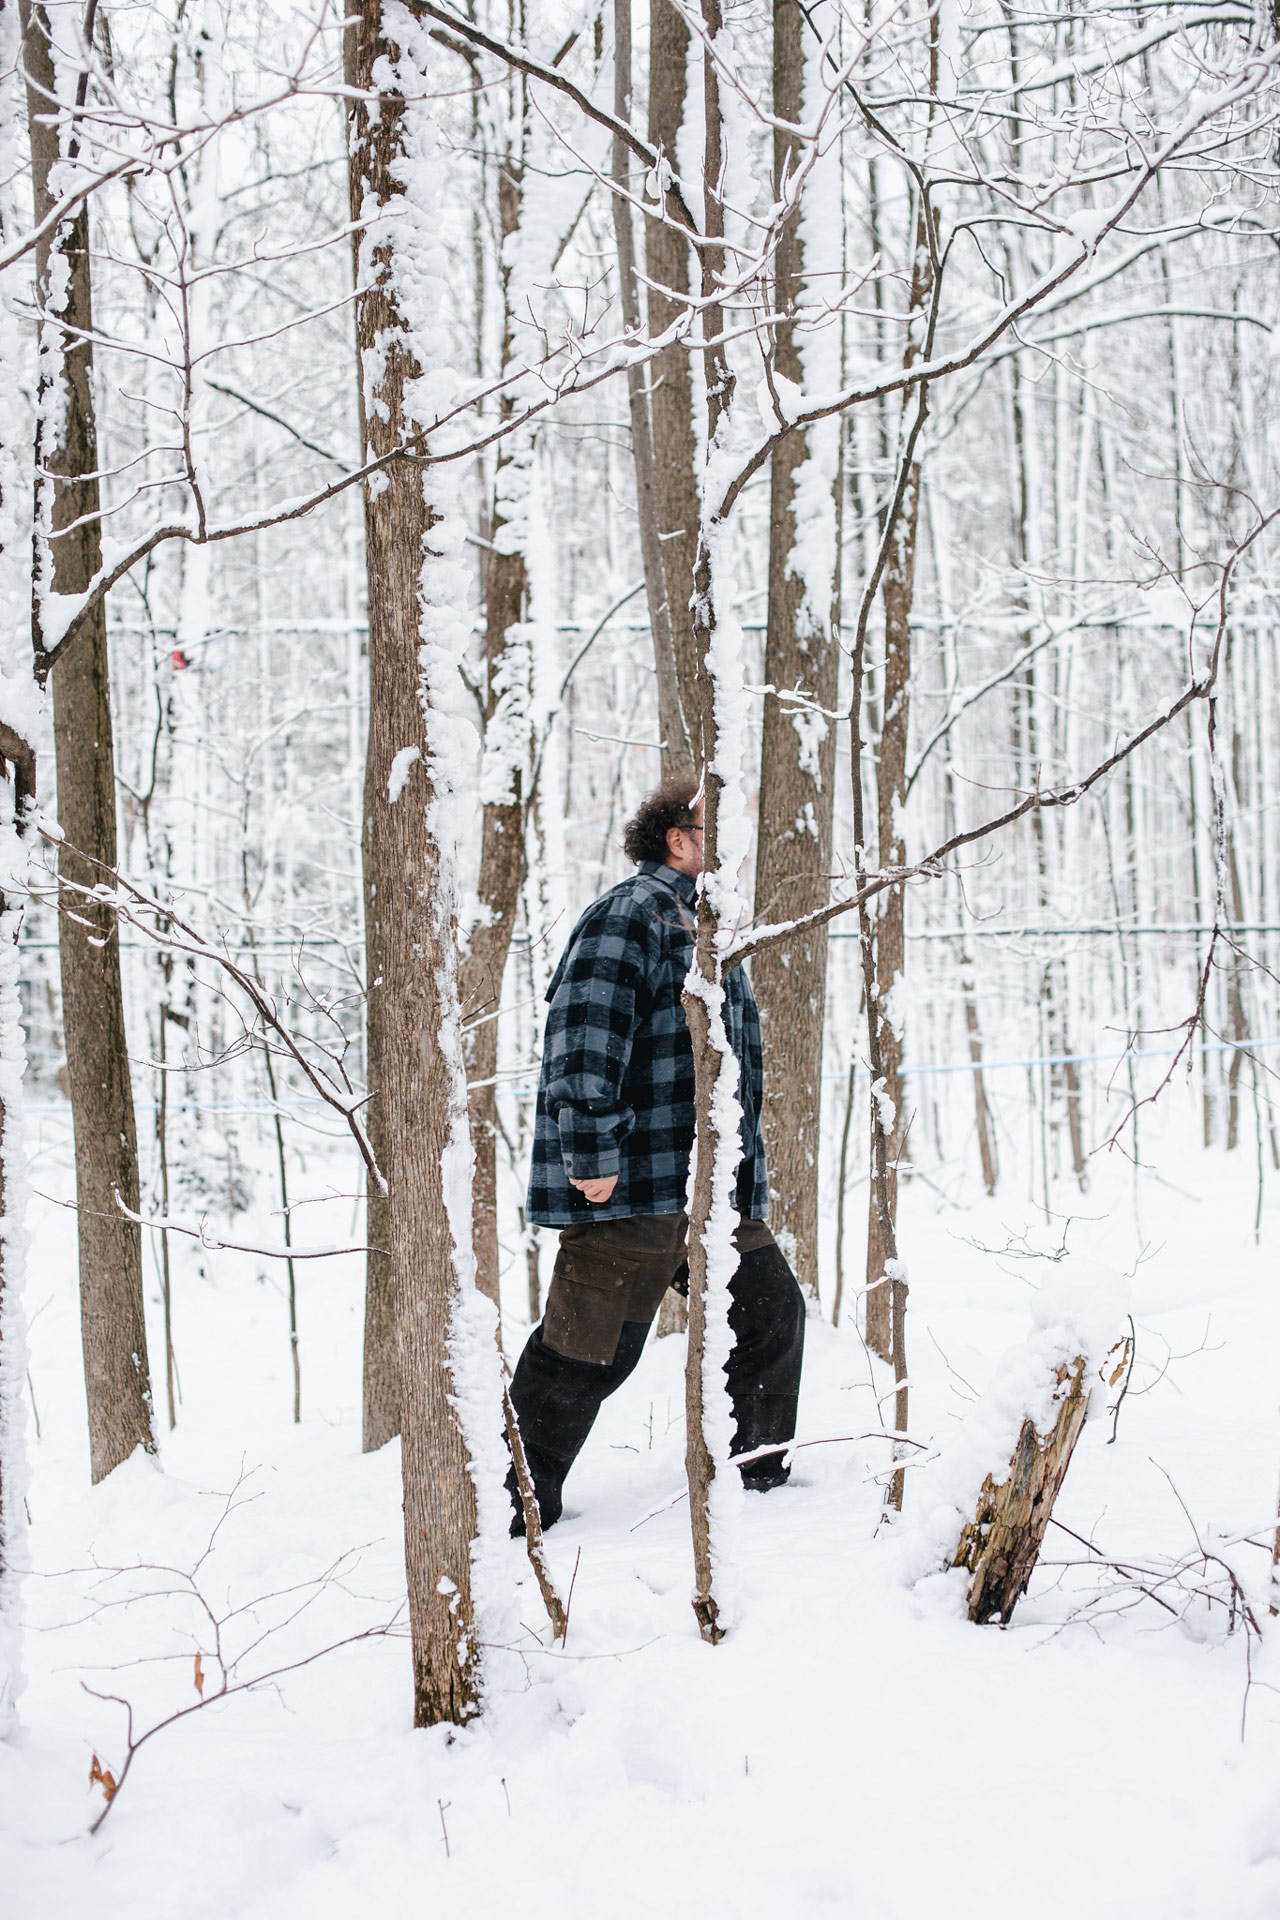 chef Martin Picard walking between trees covered in snow by Alexi Hobbs for Itineraire d'une cuisine contemporaine